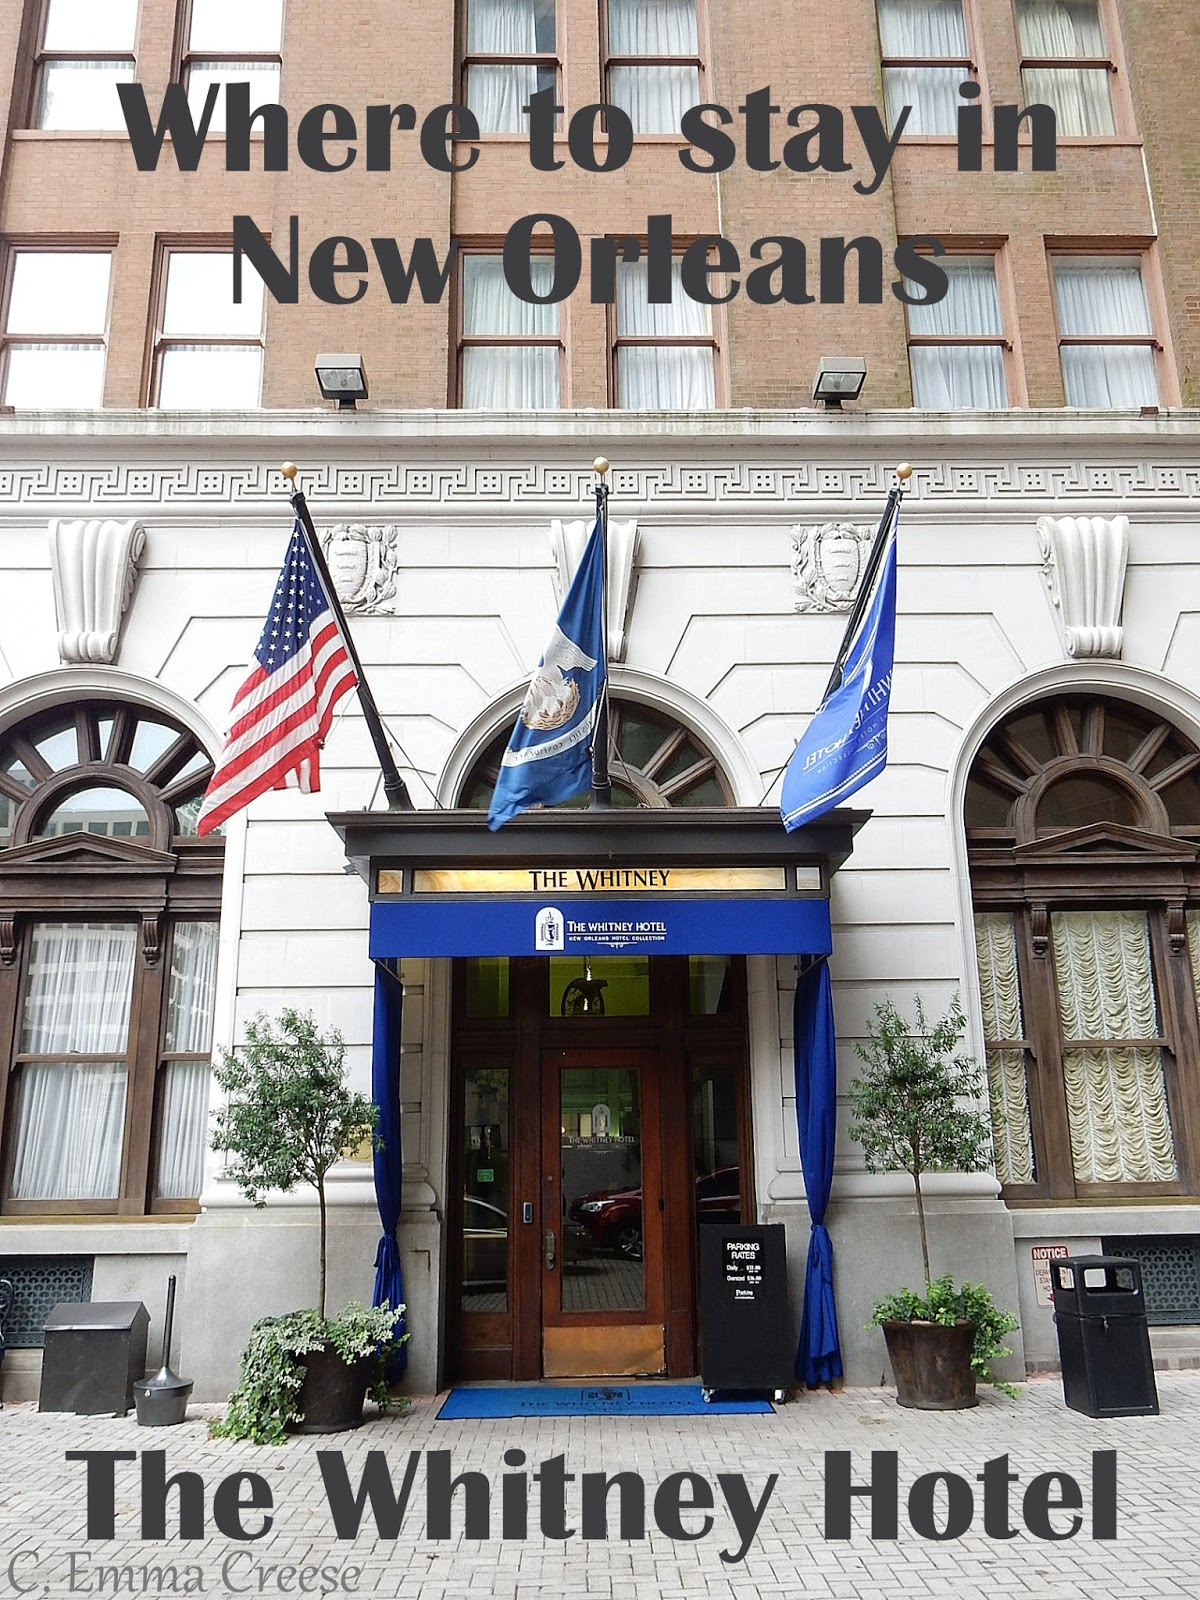 Where to stay in New Orleans The Whitney Hotel Adventures of a London Kiwi